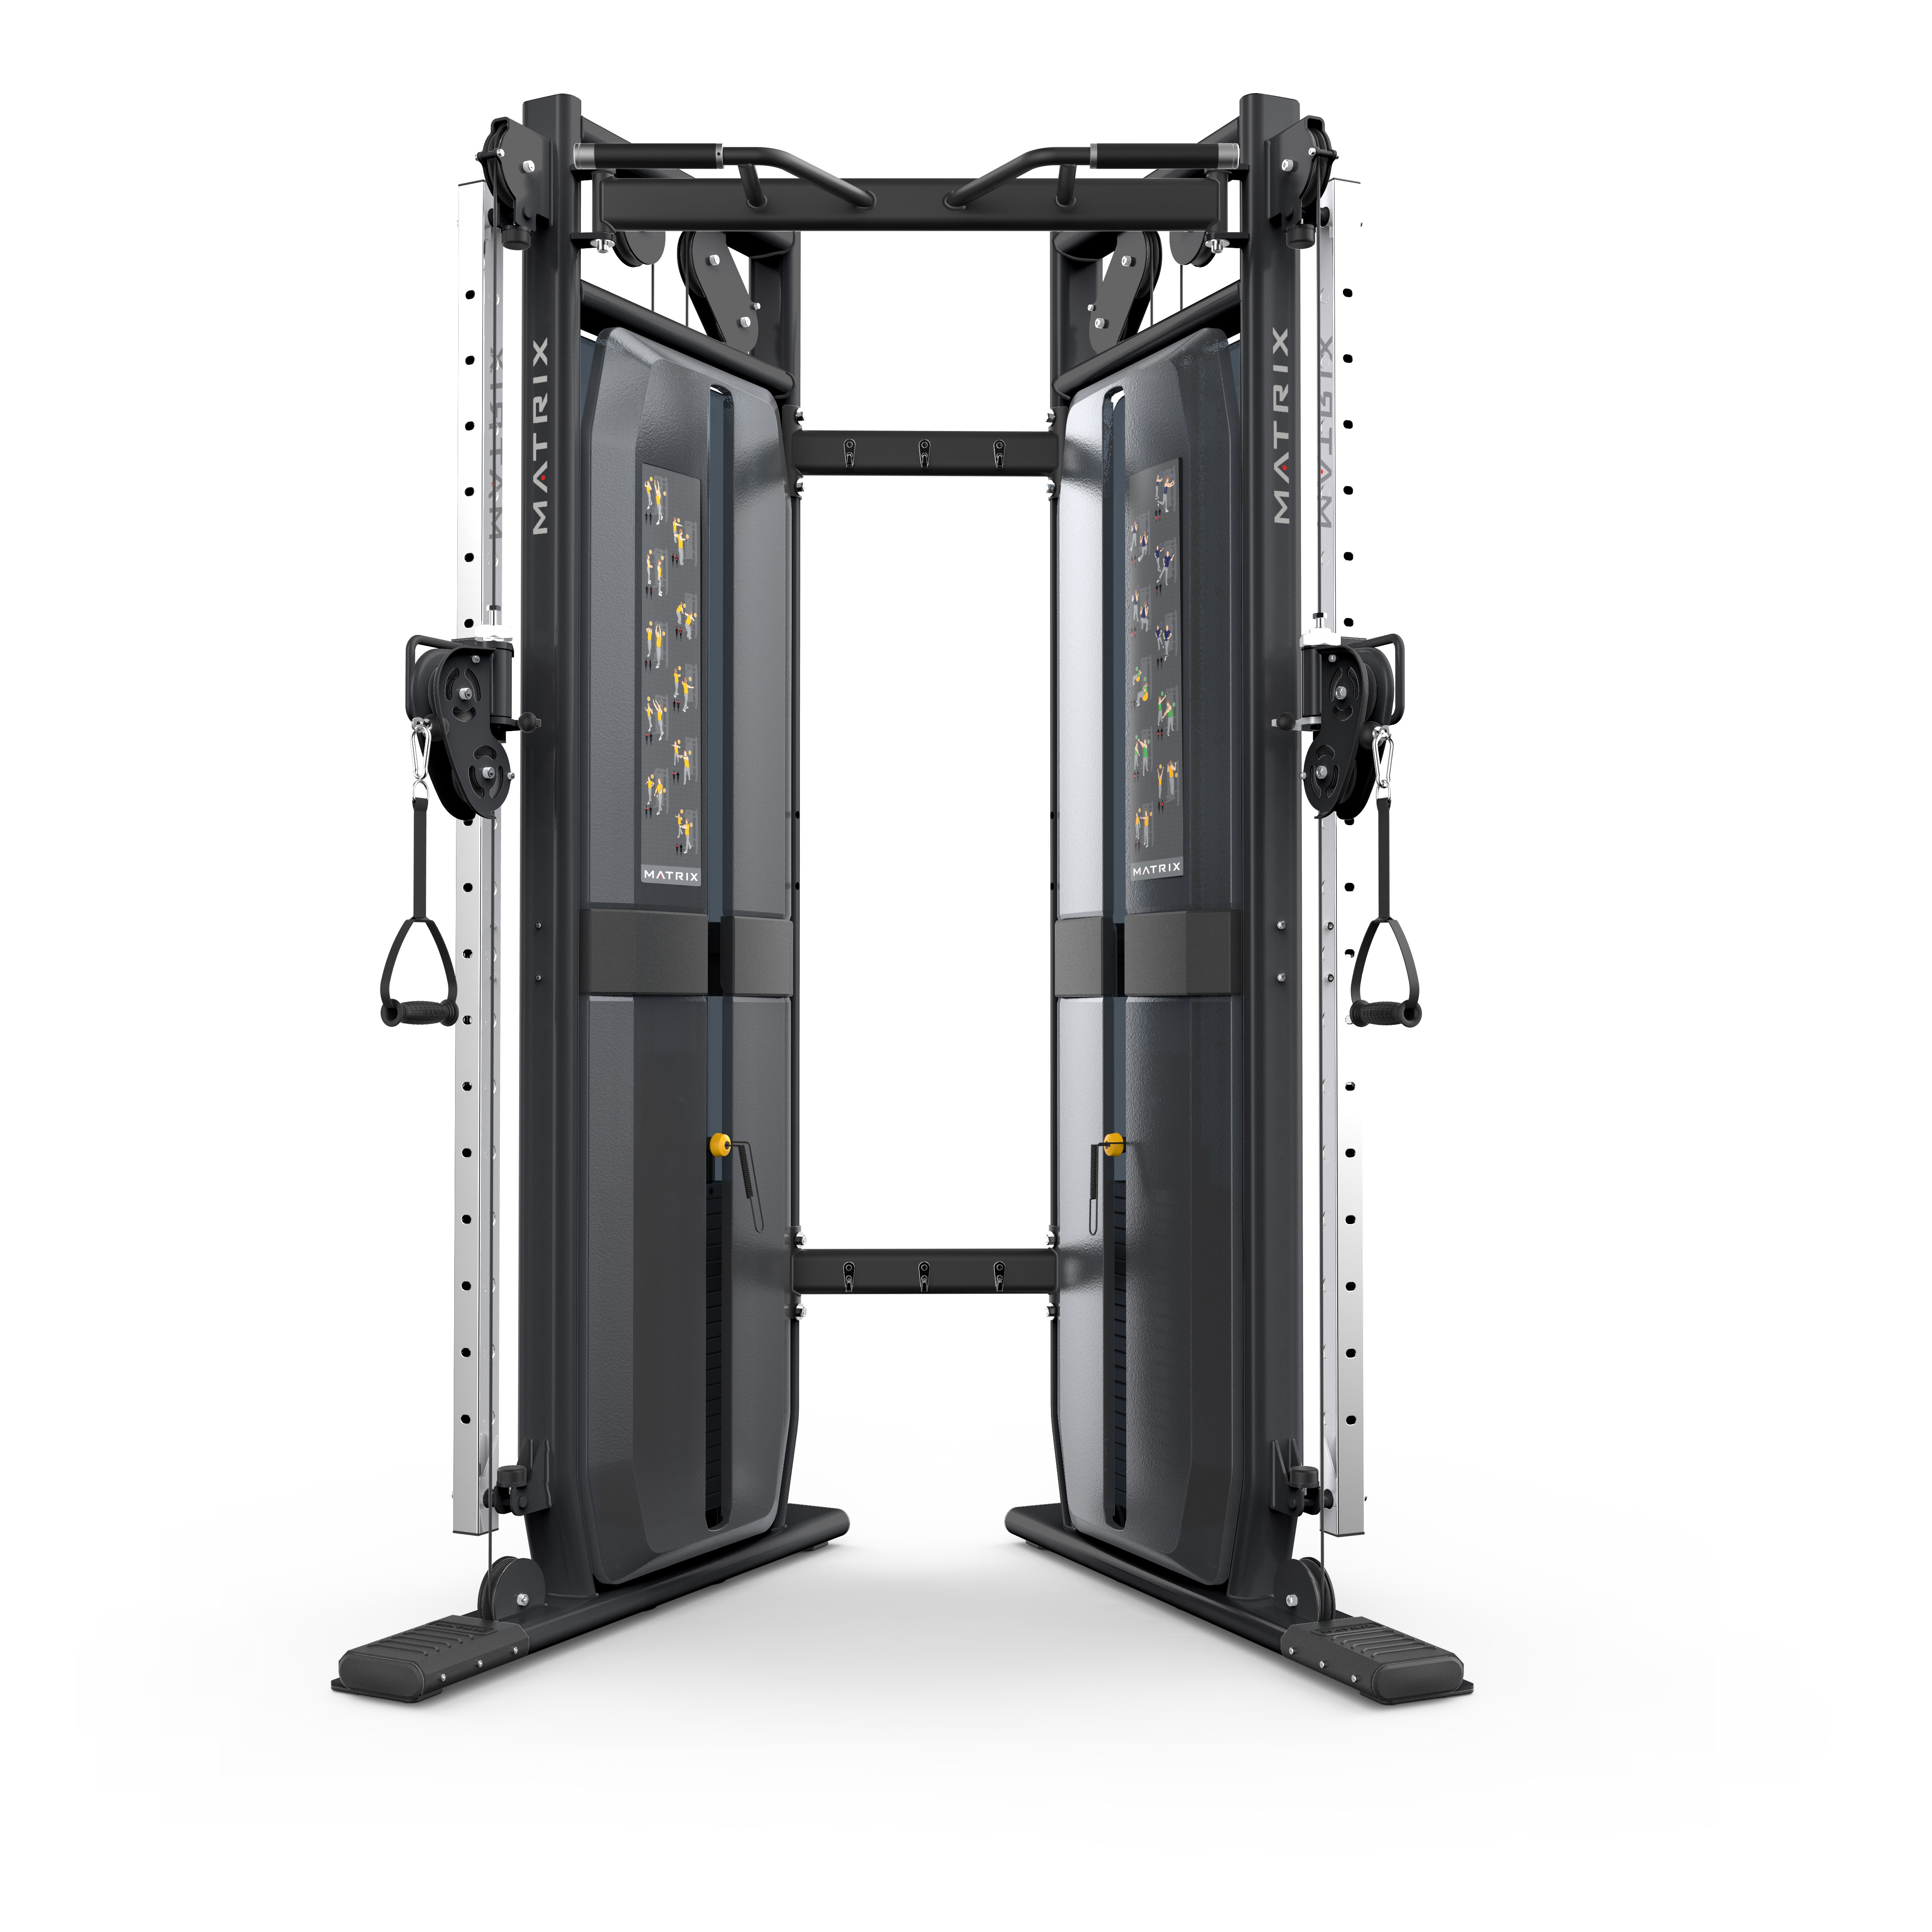 MX17_VERSA VS-VFT 18-functional trainer_Blk Matte_hero